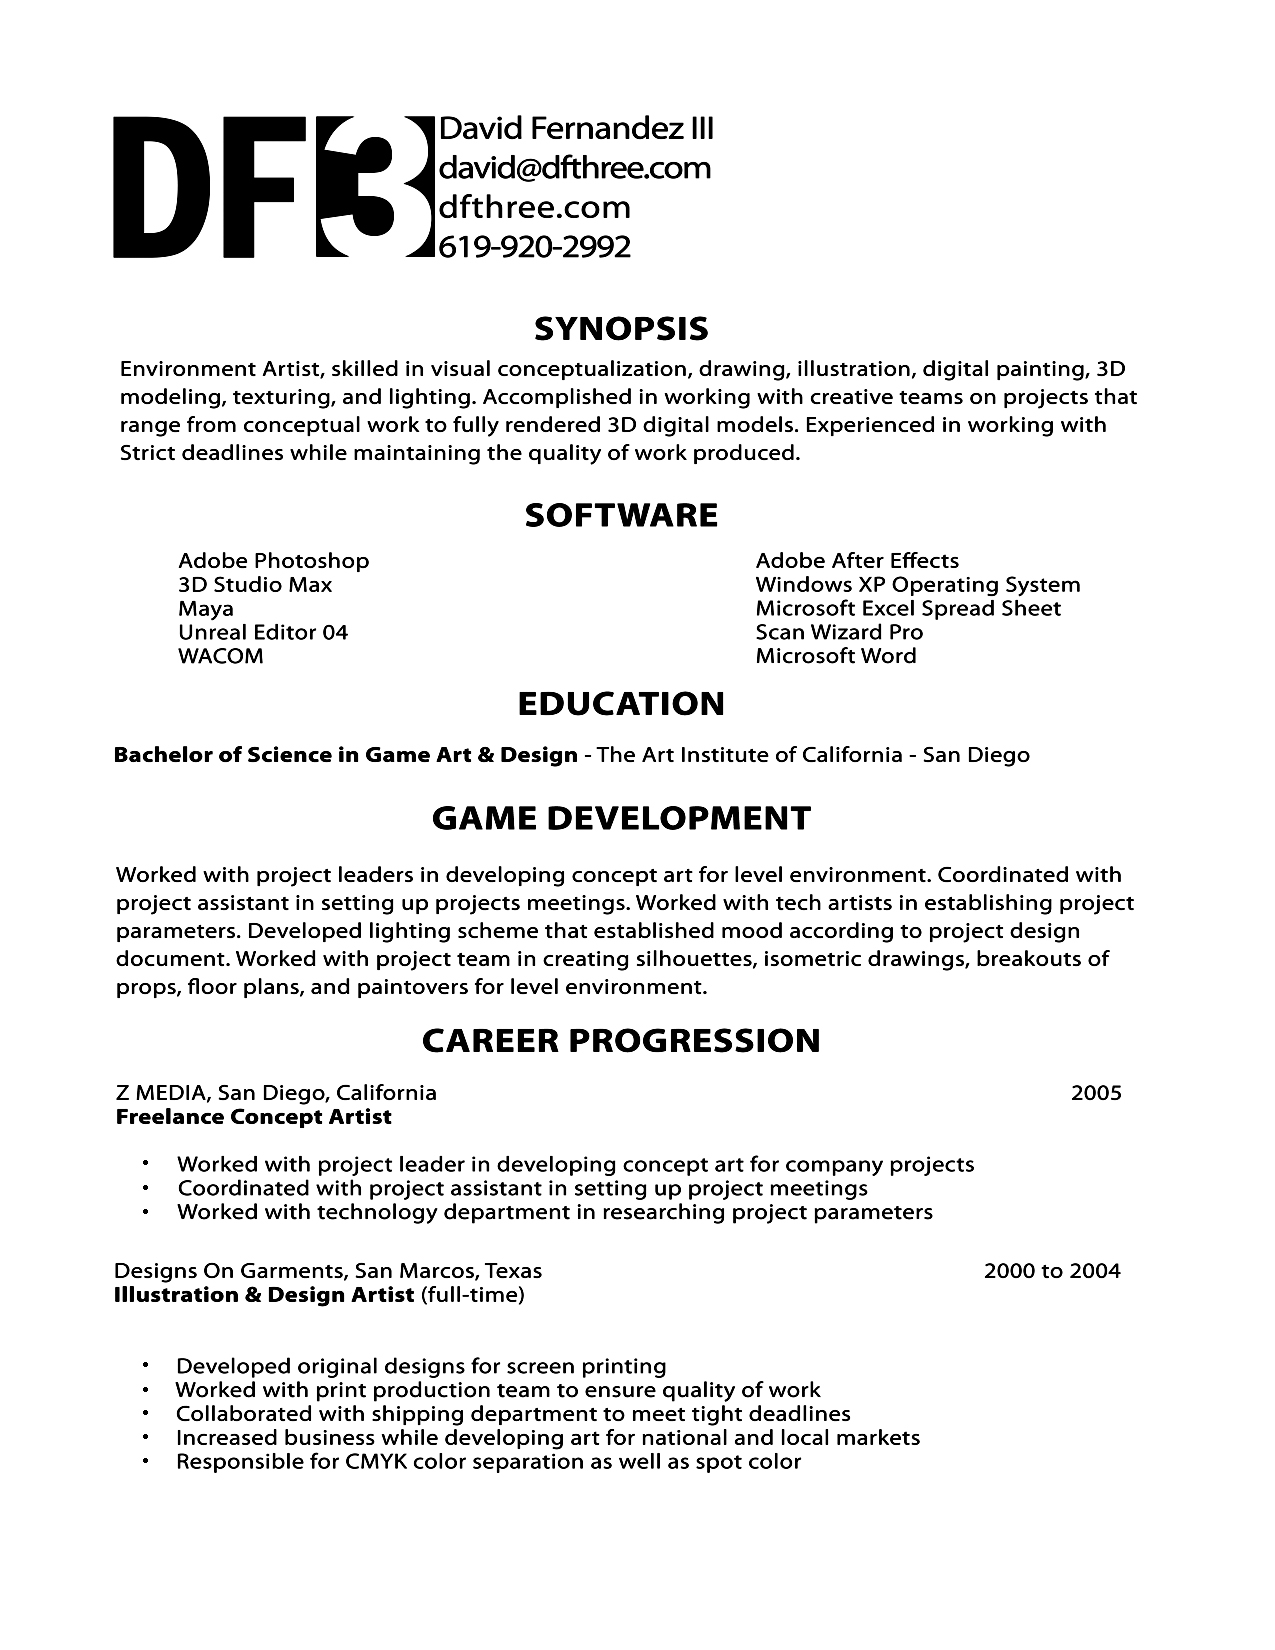 Opposenewapstandardsus  Wonderful Game Developer Resume Game Tester Resume Sample Game Tester  With Handsome Better Jobs Faster With Amazing Resume Gpa Also Journalist Resume In Addition Free Examples Of Resumes And Registered Nurse Resume Sample As Well As Business Manager Resume Additionally Power Verbs For Resume From Kelseymarieco With Opposenewapstandardsus  Handsome Game Developer Resume Game Tester Resume Sample Game Tester  With Amazing Better Jobs Faster And Wonderful Resume Gpa Also Journalist Resume In Addition Free Examples Of Resumes From Kelseymarieco